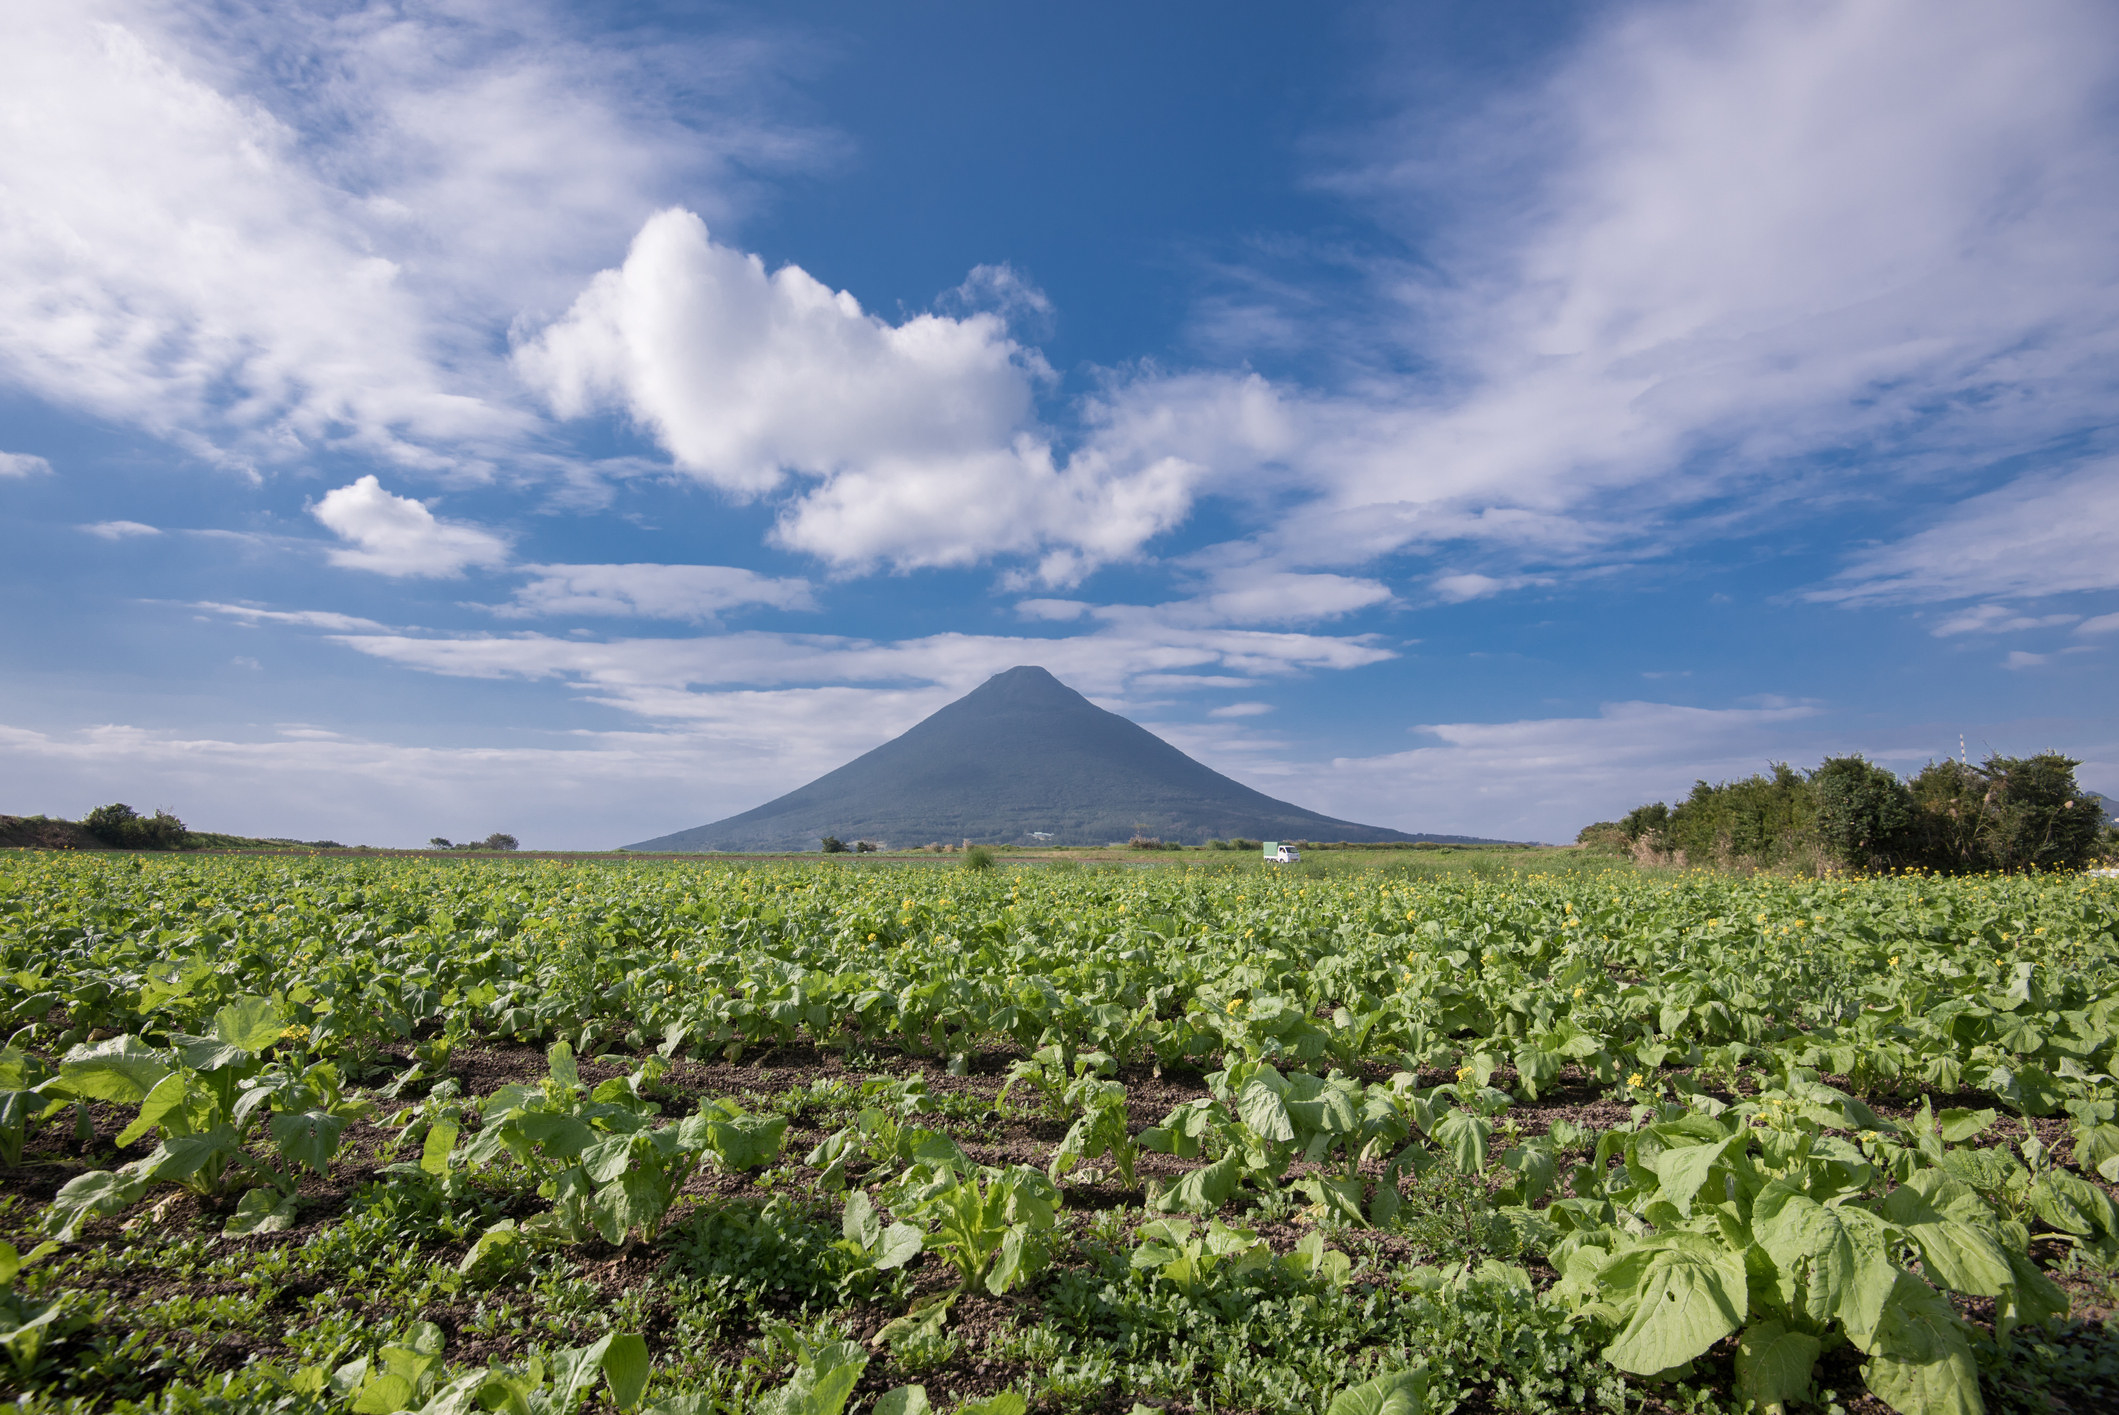 A volcano in southern Japan.